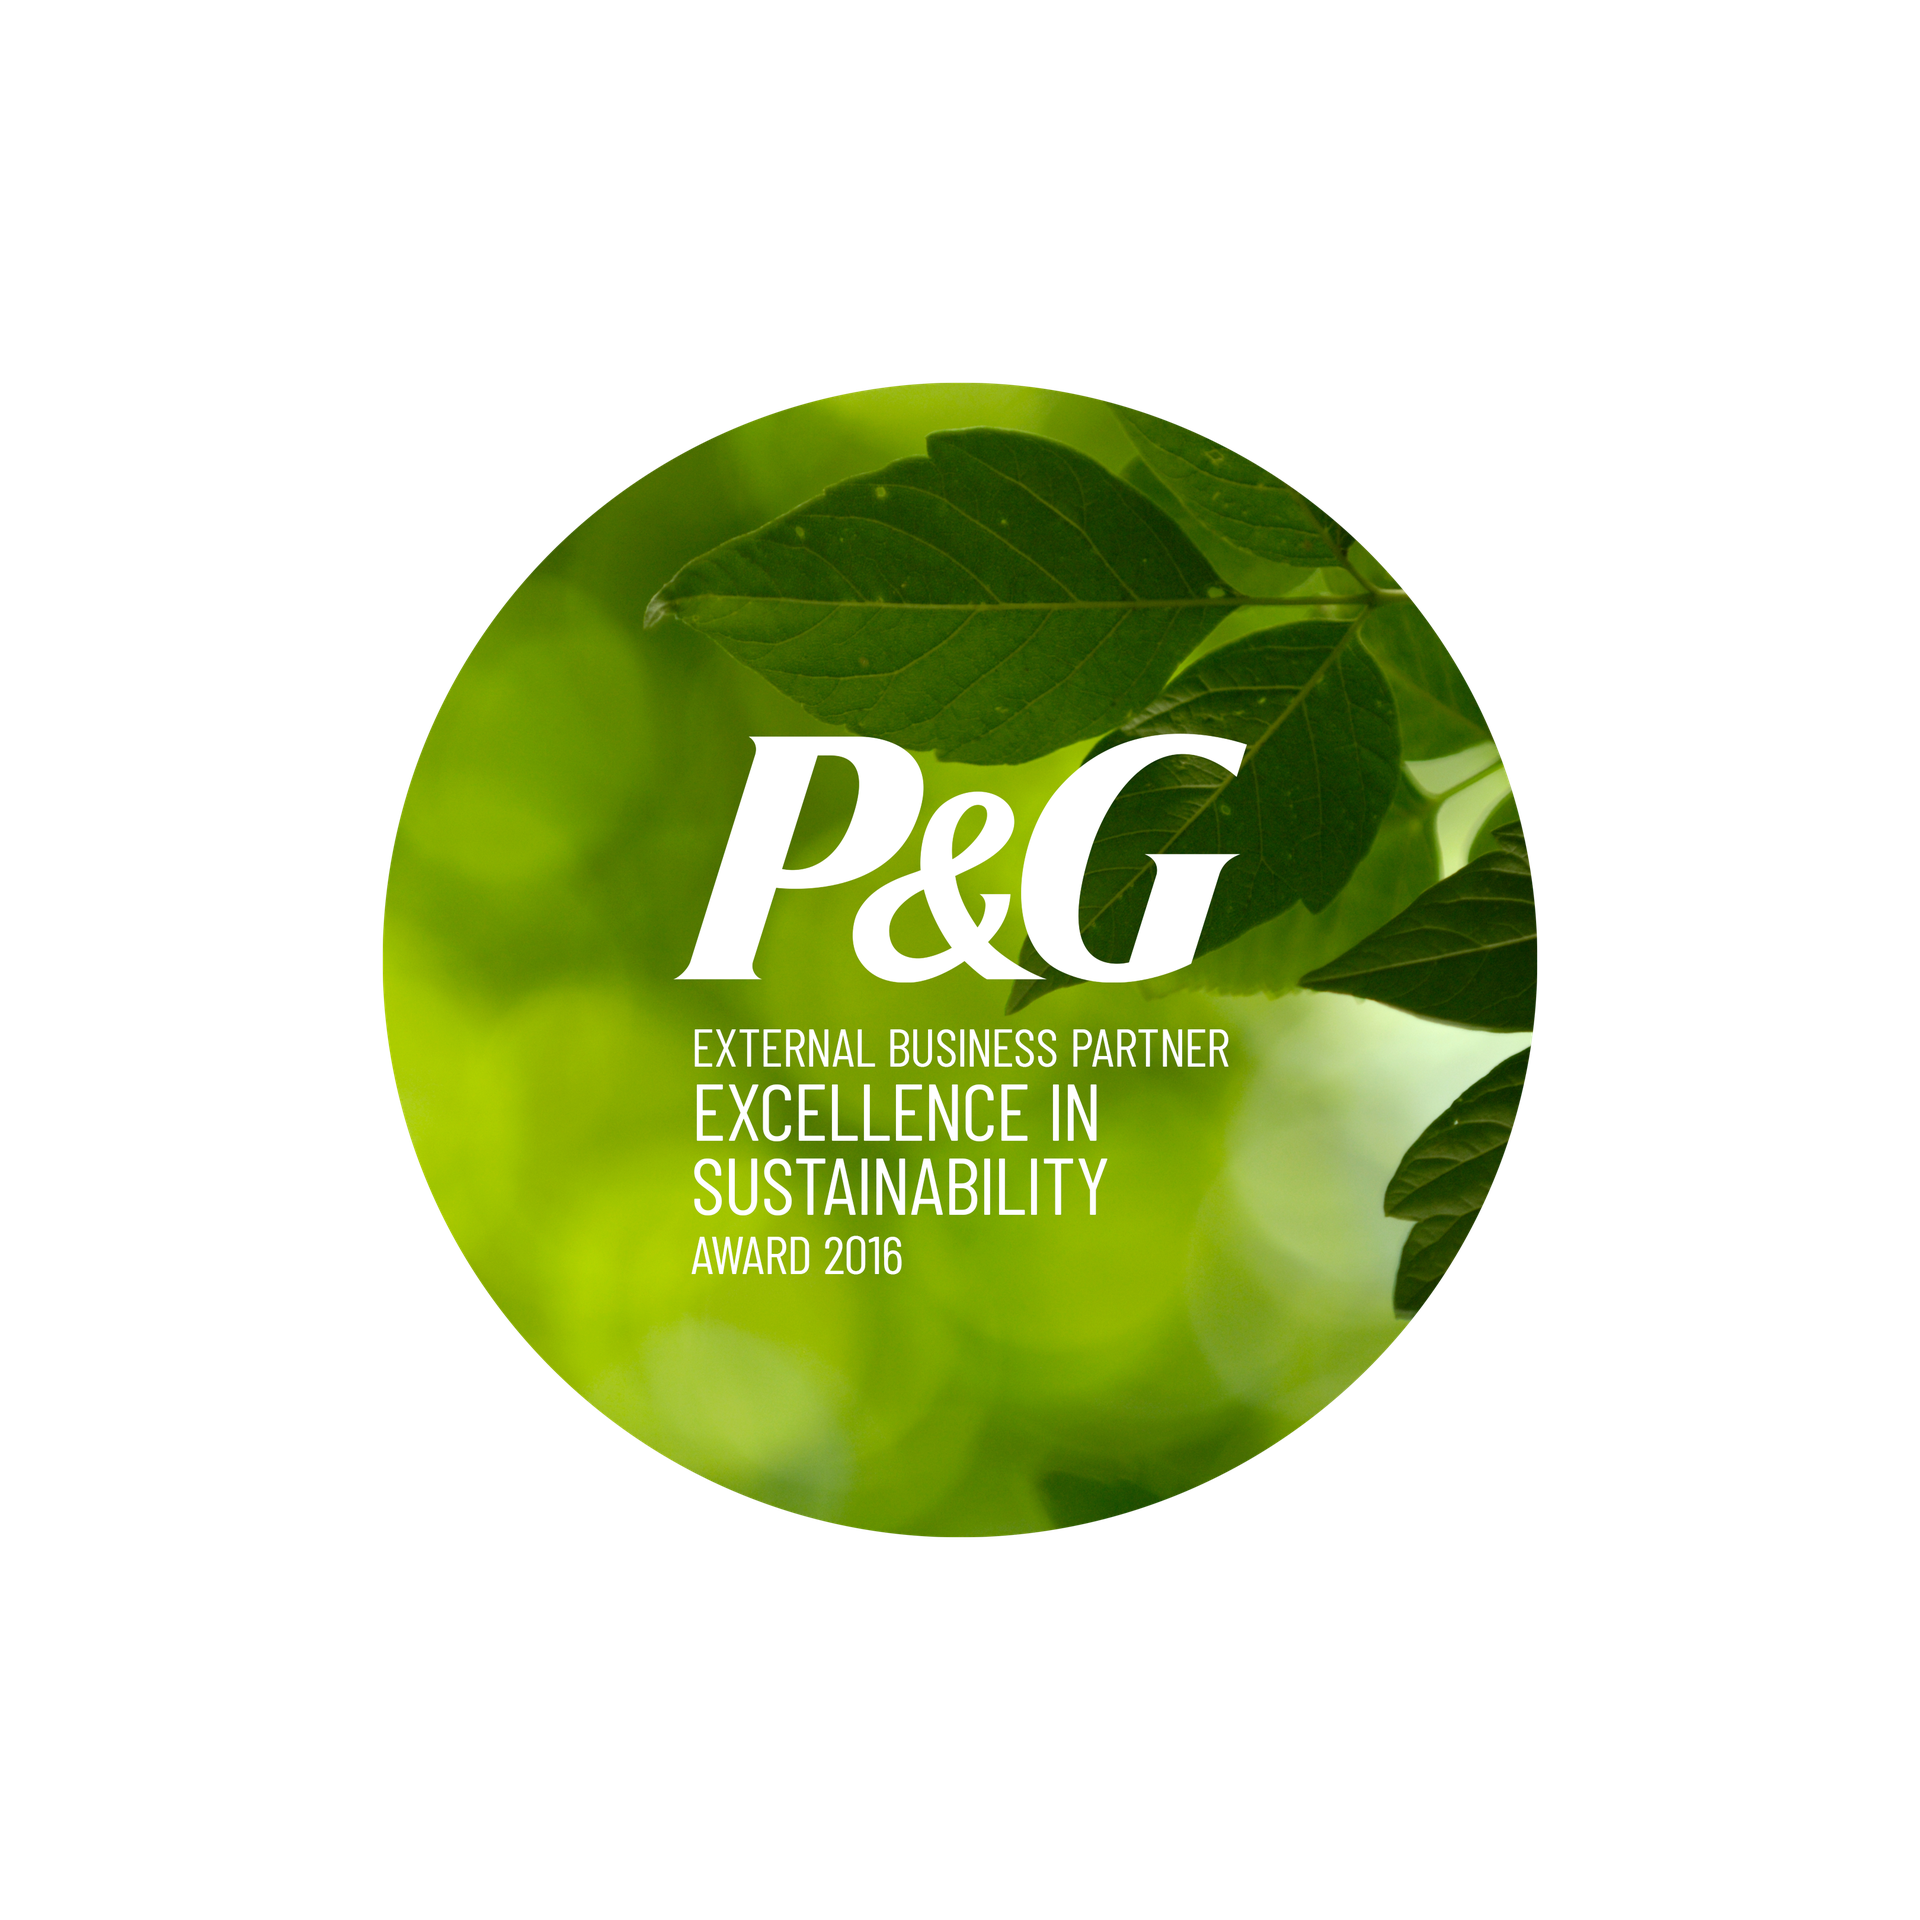 P&G Excellence in Sustainability Award